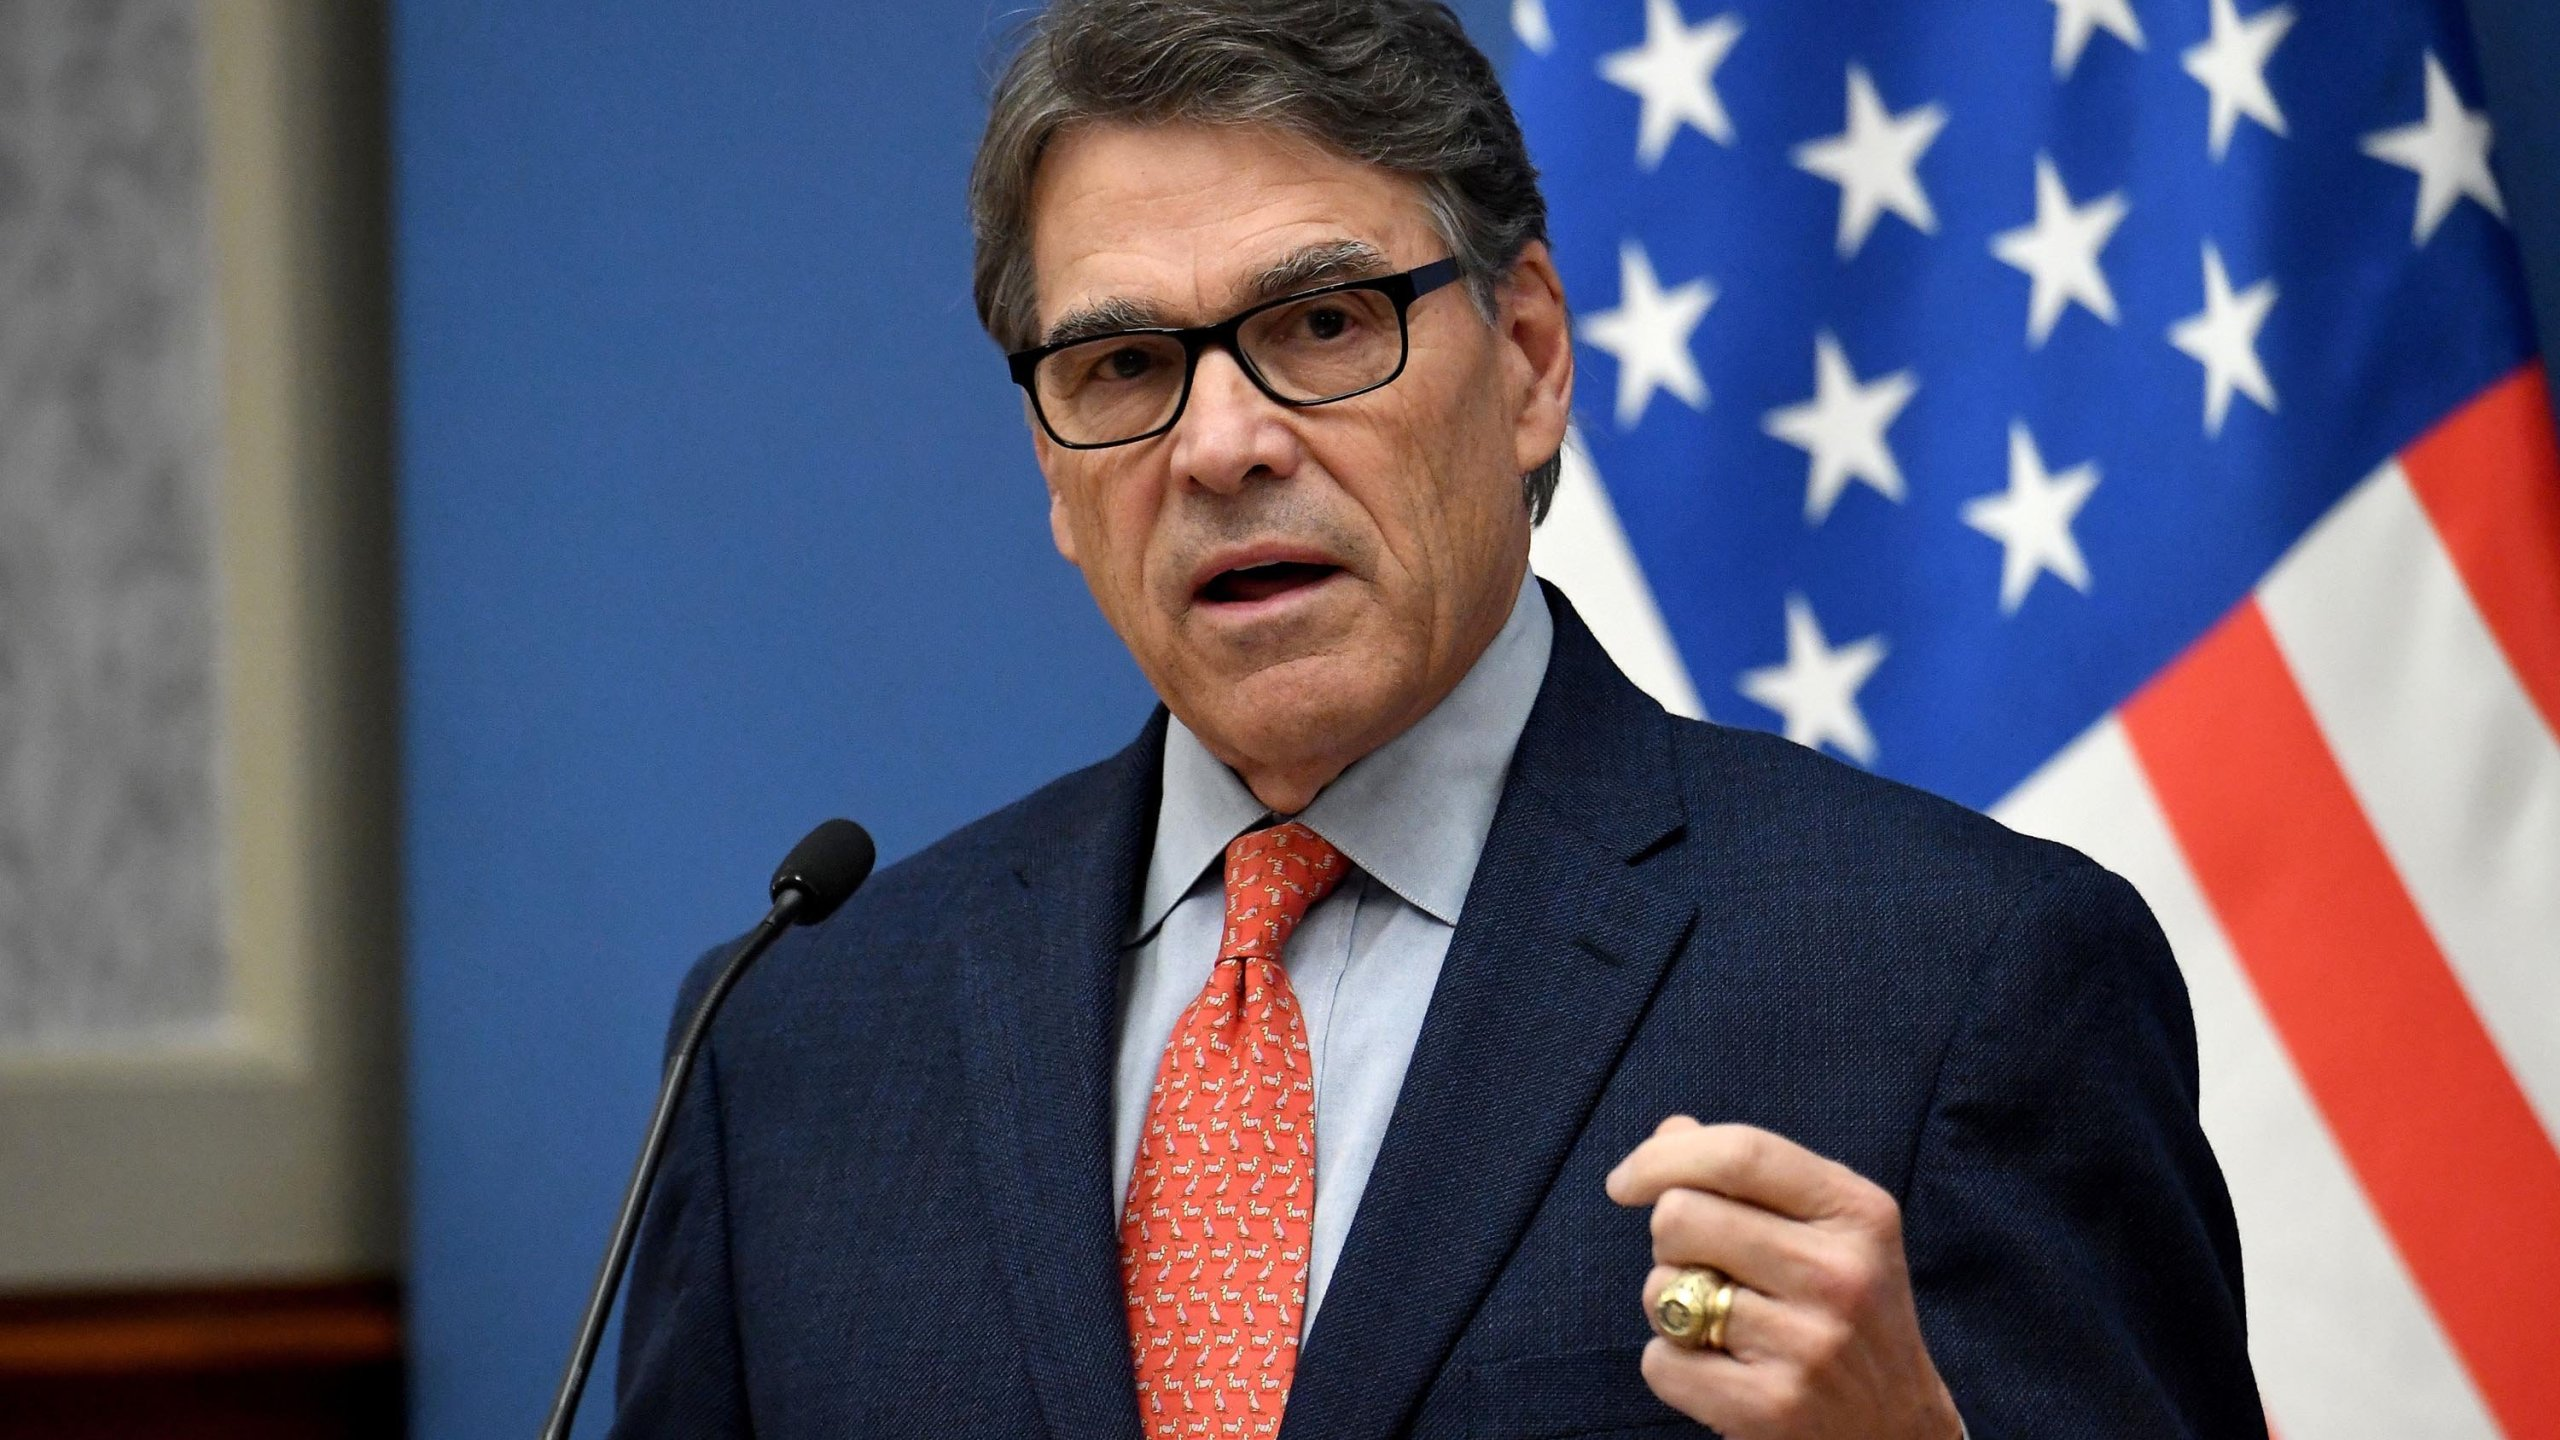 Energy Secretary Rick Perry will not participate in a closed-door deposition with impeachment investigators but would consider testifying in an open hearing, according to the Department of Energy. (Credit: Attila Kisbenedek/AFP/Getty Images via CNN)